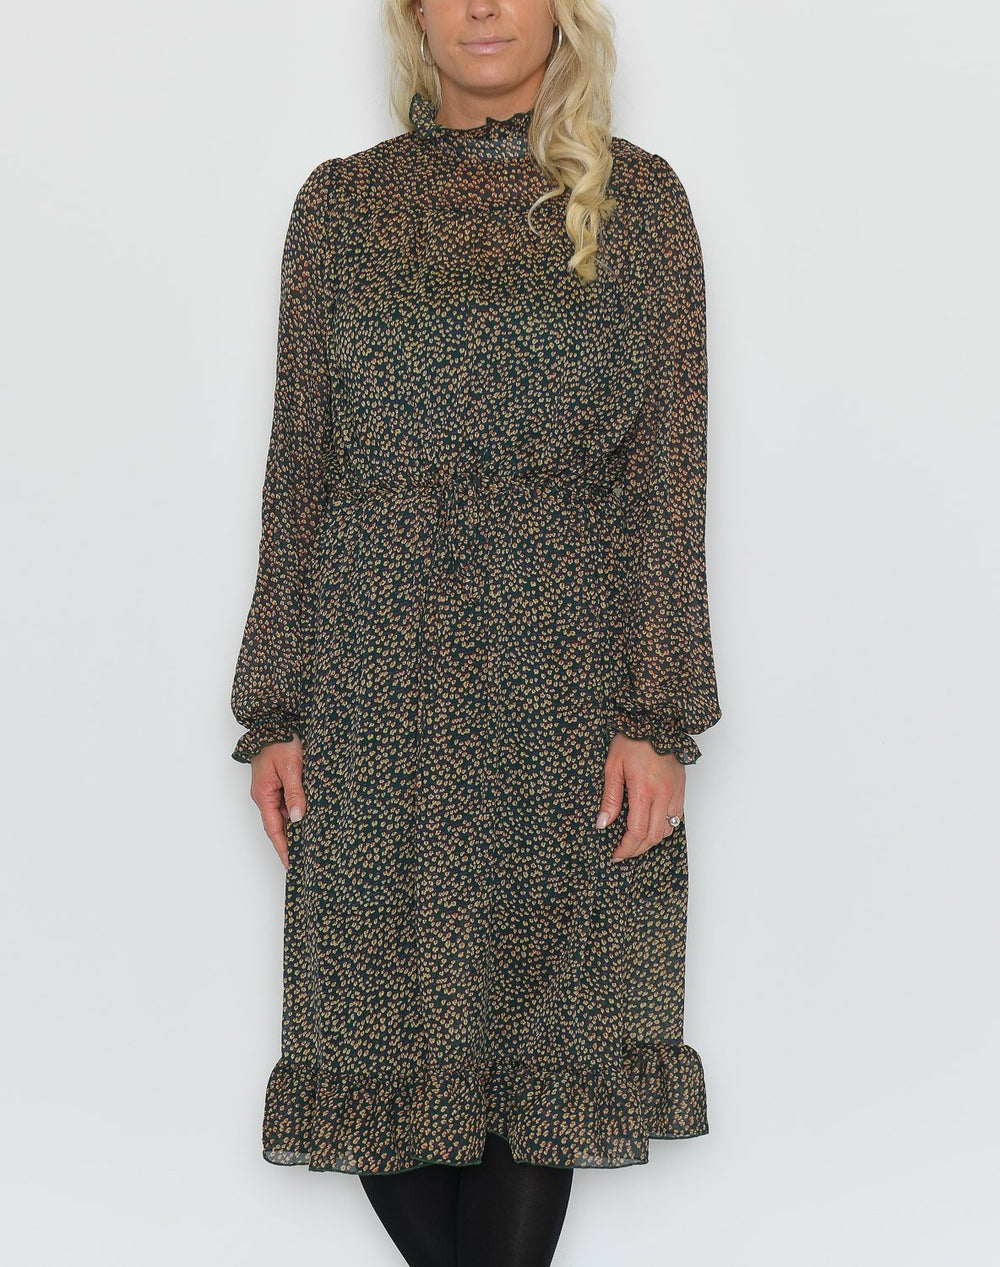 Liberté Jasmin dress olive - Online-Mode